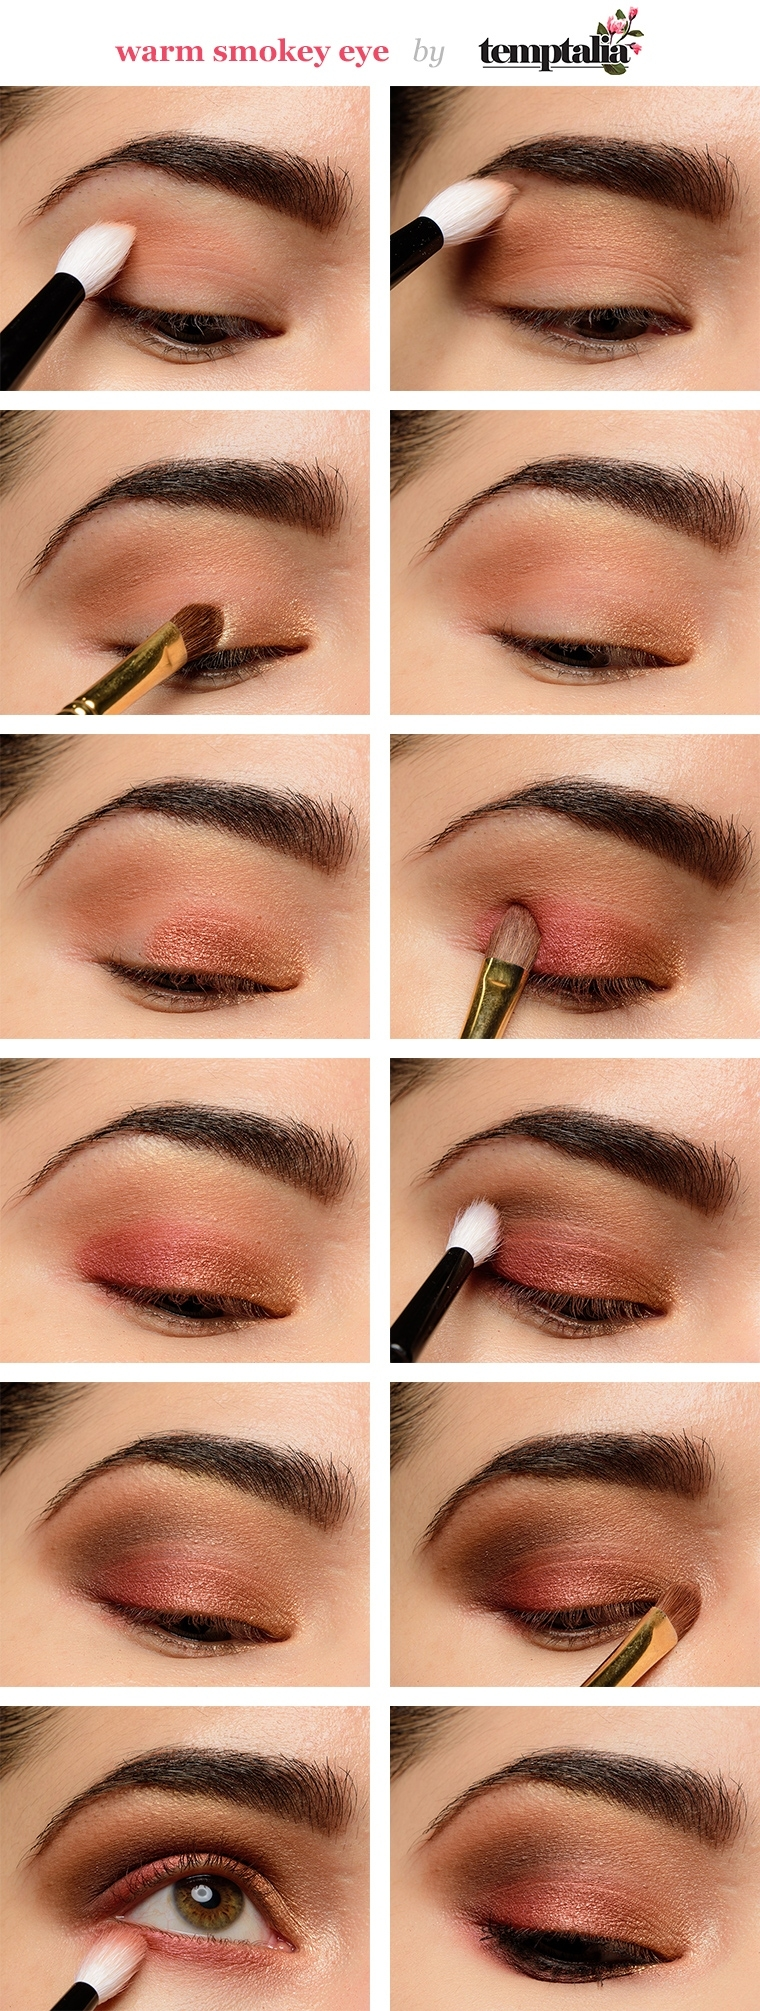 How To Apply Eyeshadow: Smokey Eye Makeup Tutorial For Beginners intended for Smoky Eye Makeup Step By Step Pictures